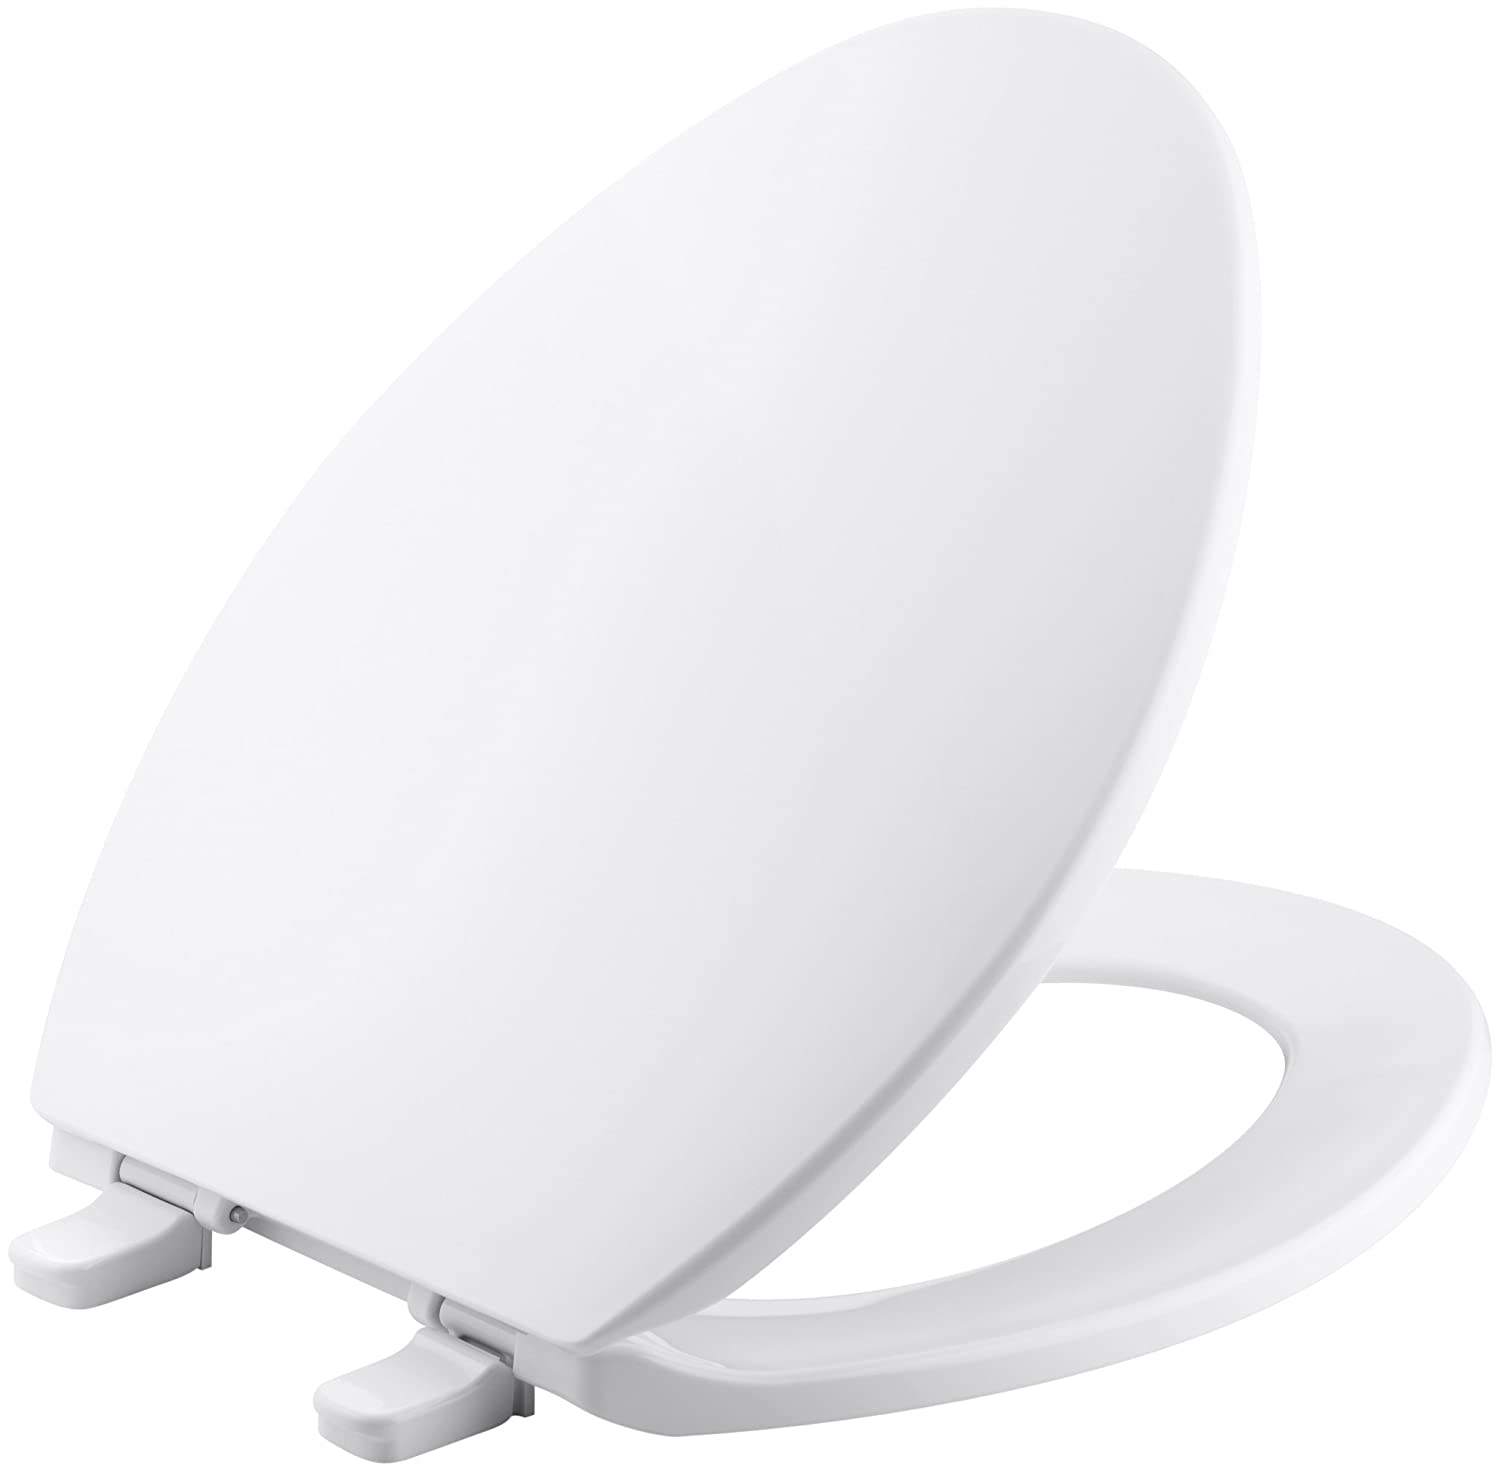 KOHLER K-4774-0 Brevia Elongated White Toilet Seat, with Quick-Release Hinges, Quick-Attach Hardware, Convenient Cleaning, Quick and Easy Installation